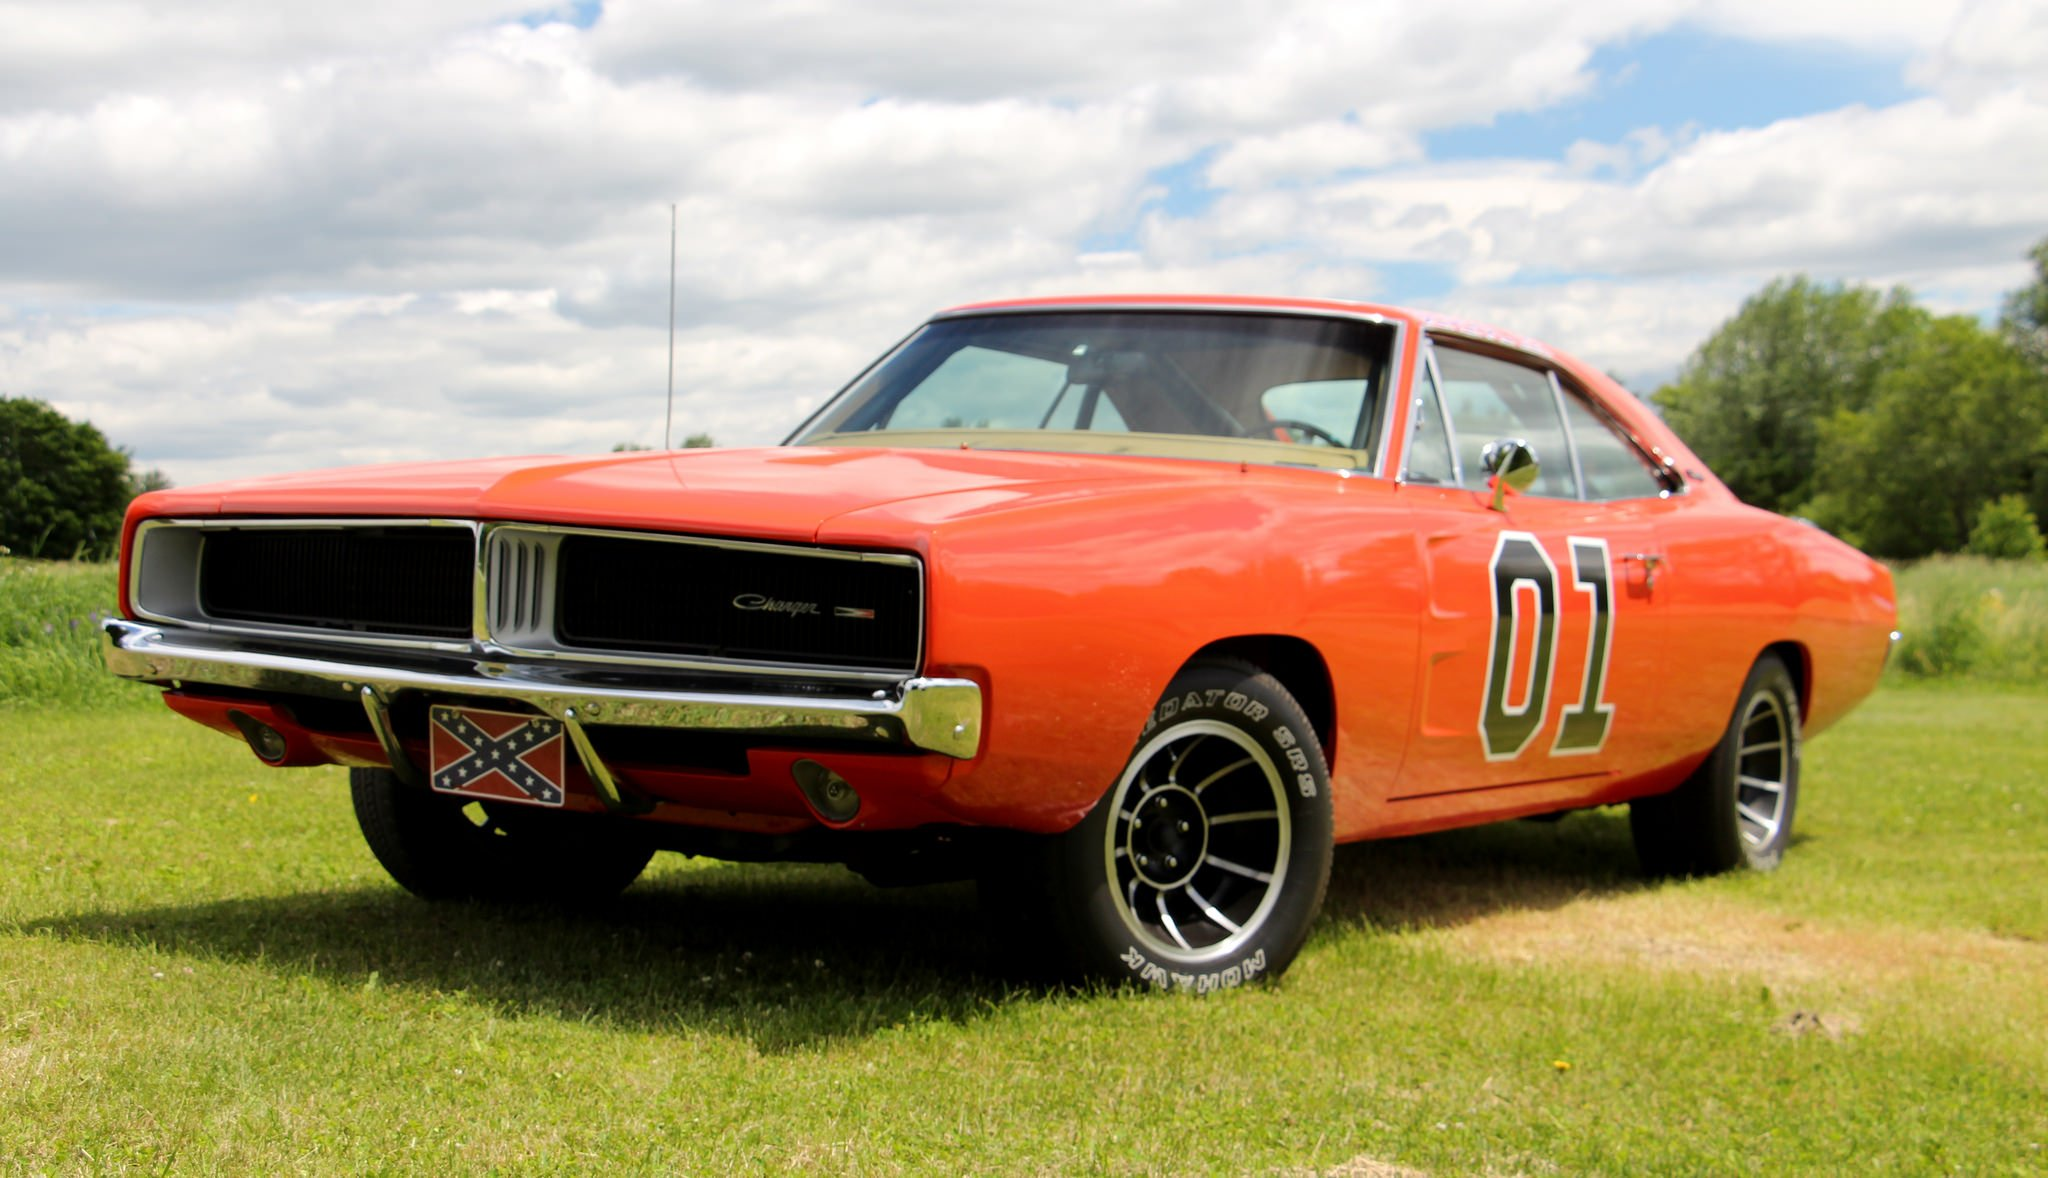 dodge charger general lee 1969 cars pictures wallpapers